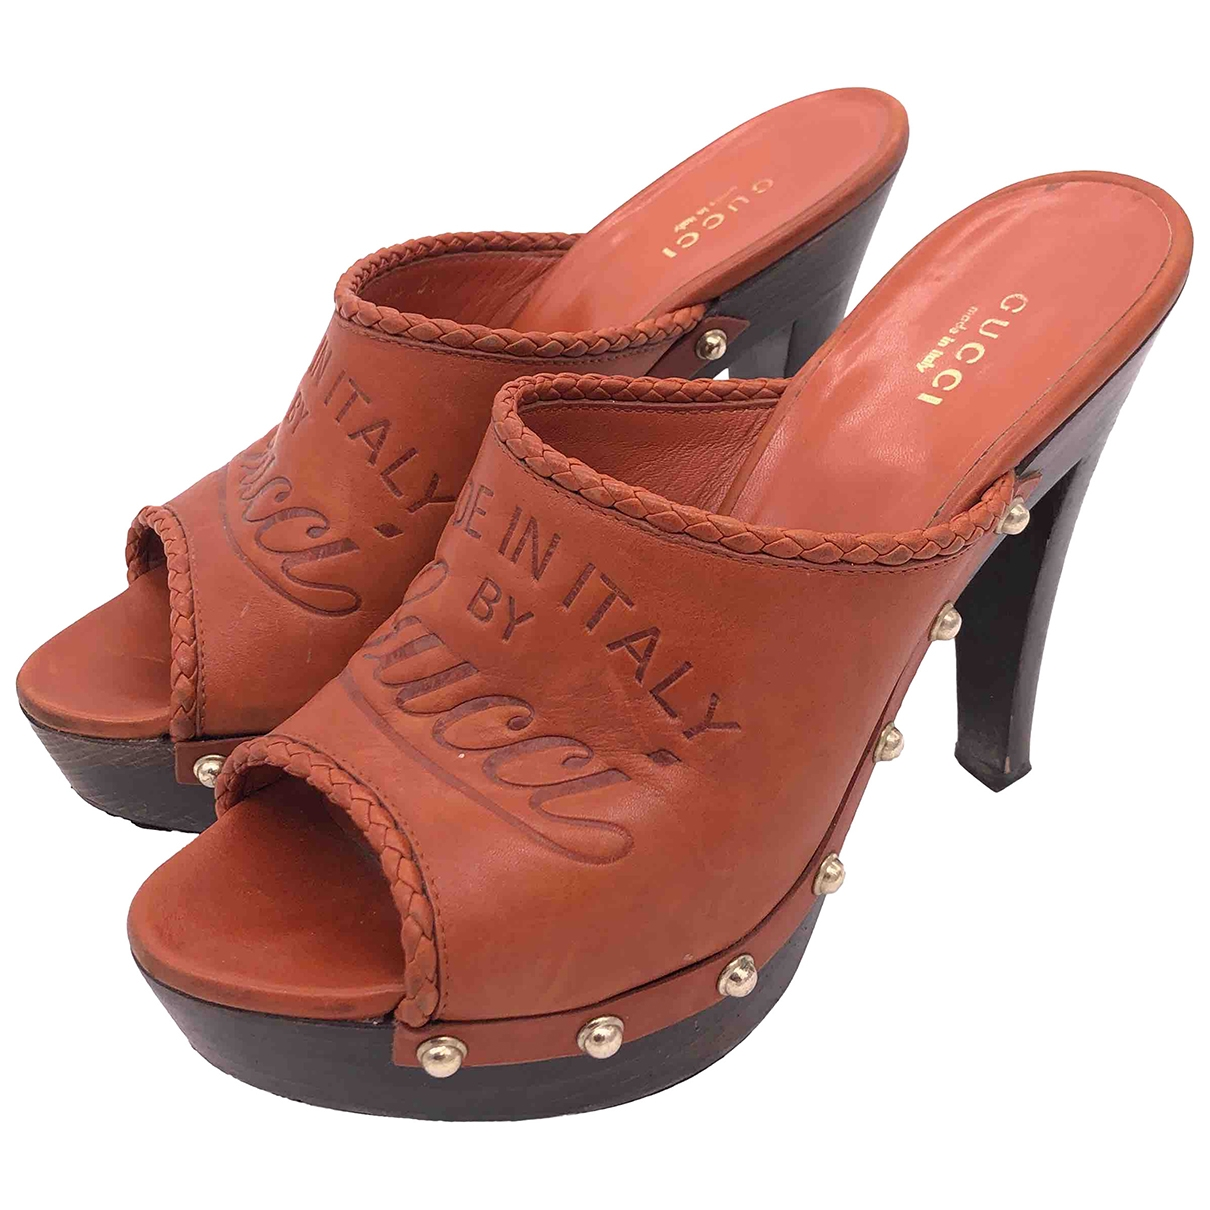 Gucci \N Brown Leather Mules & Clogs for Women 36.5 EU